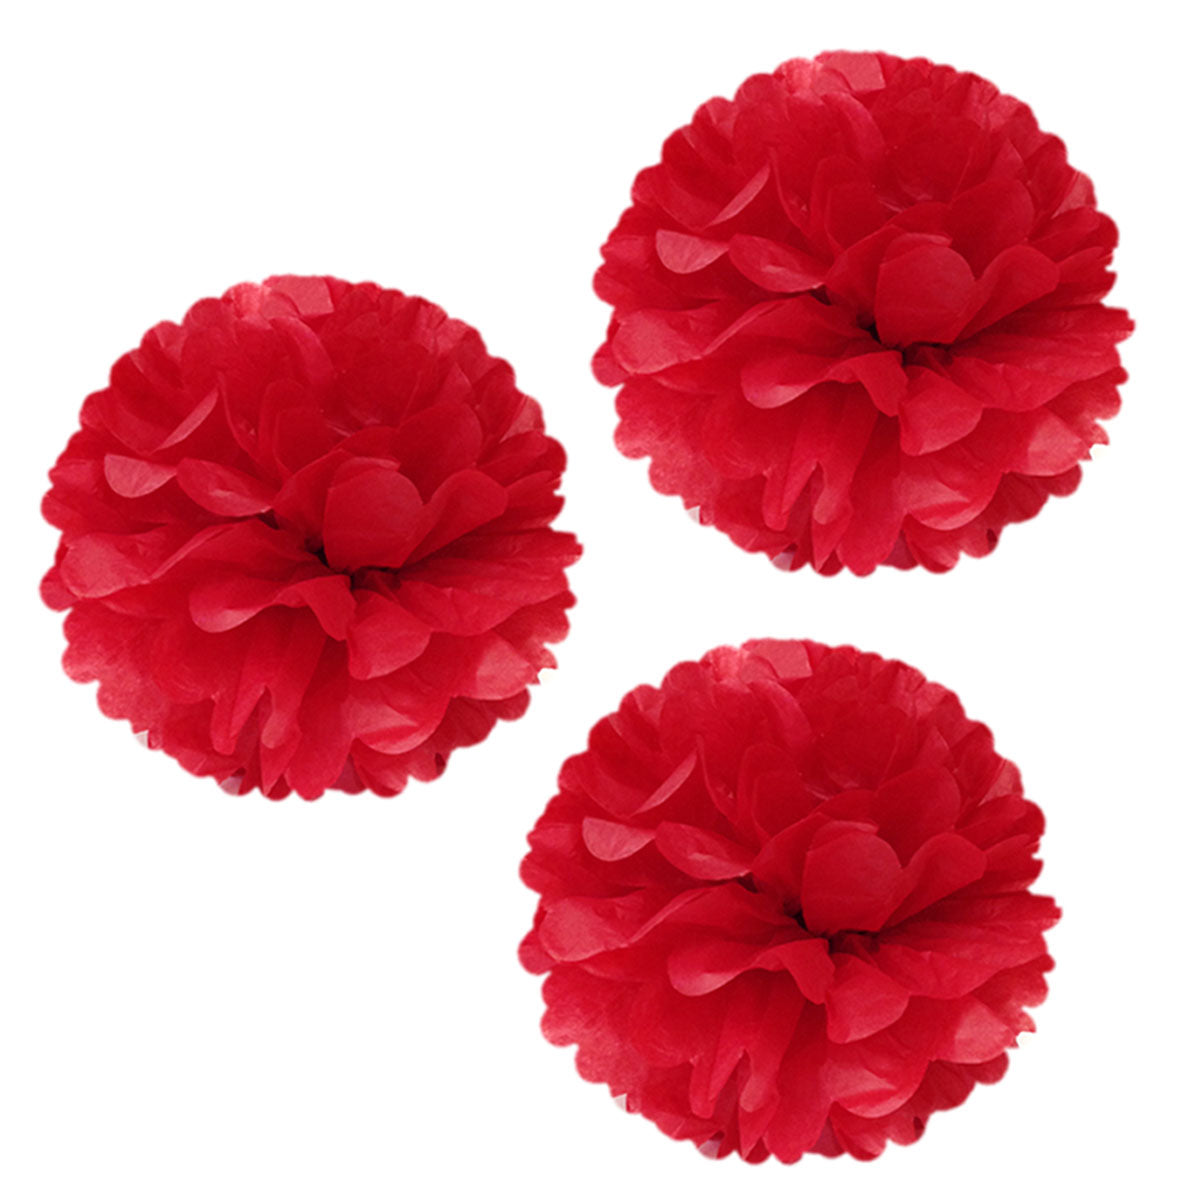 "Wrapables 14"" Set of 3 Tissue Pom Poms Party Decorations"